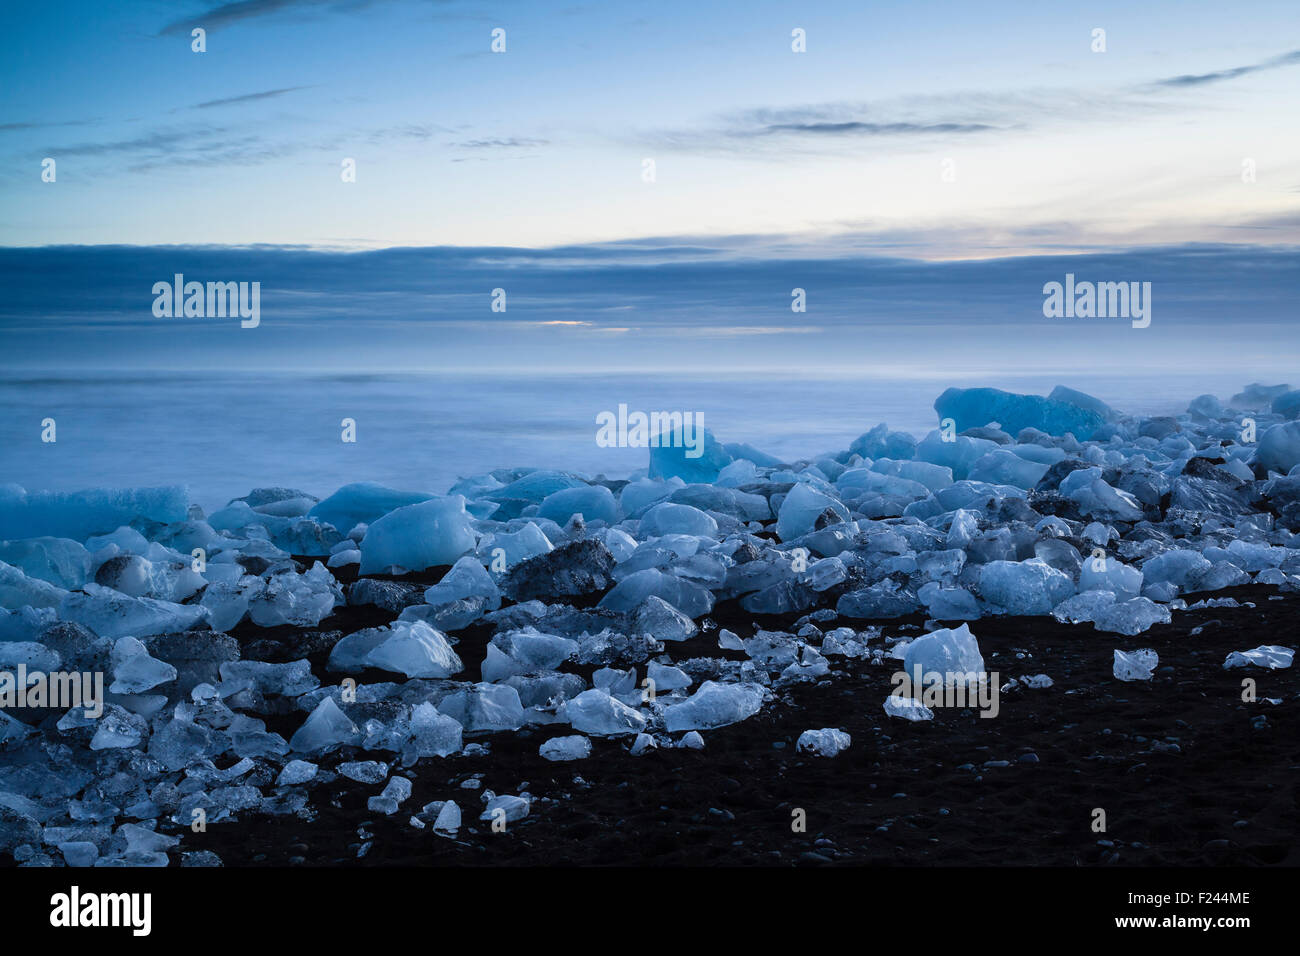 Icebergs from the Jokulsarlon glacial lagoon washed up on a black volcanic sand beach. South Iceland. Stock Photo